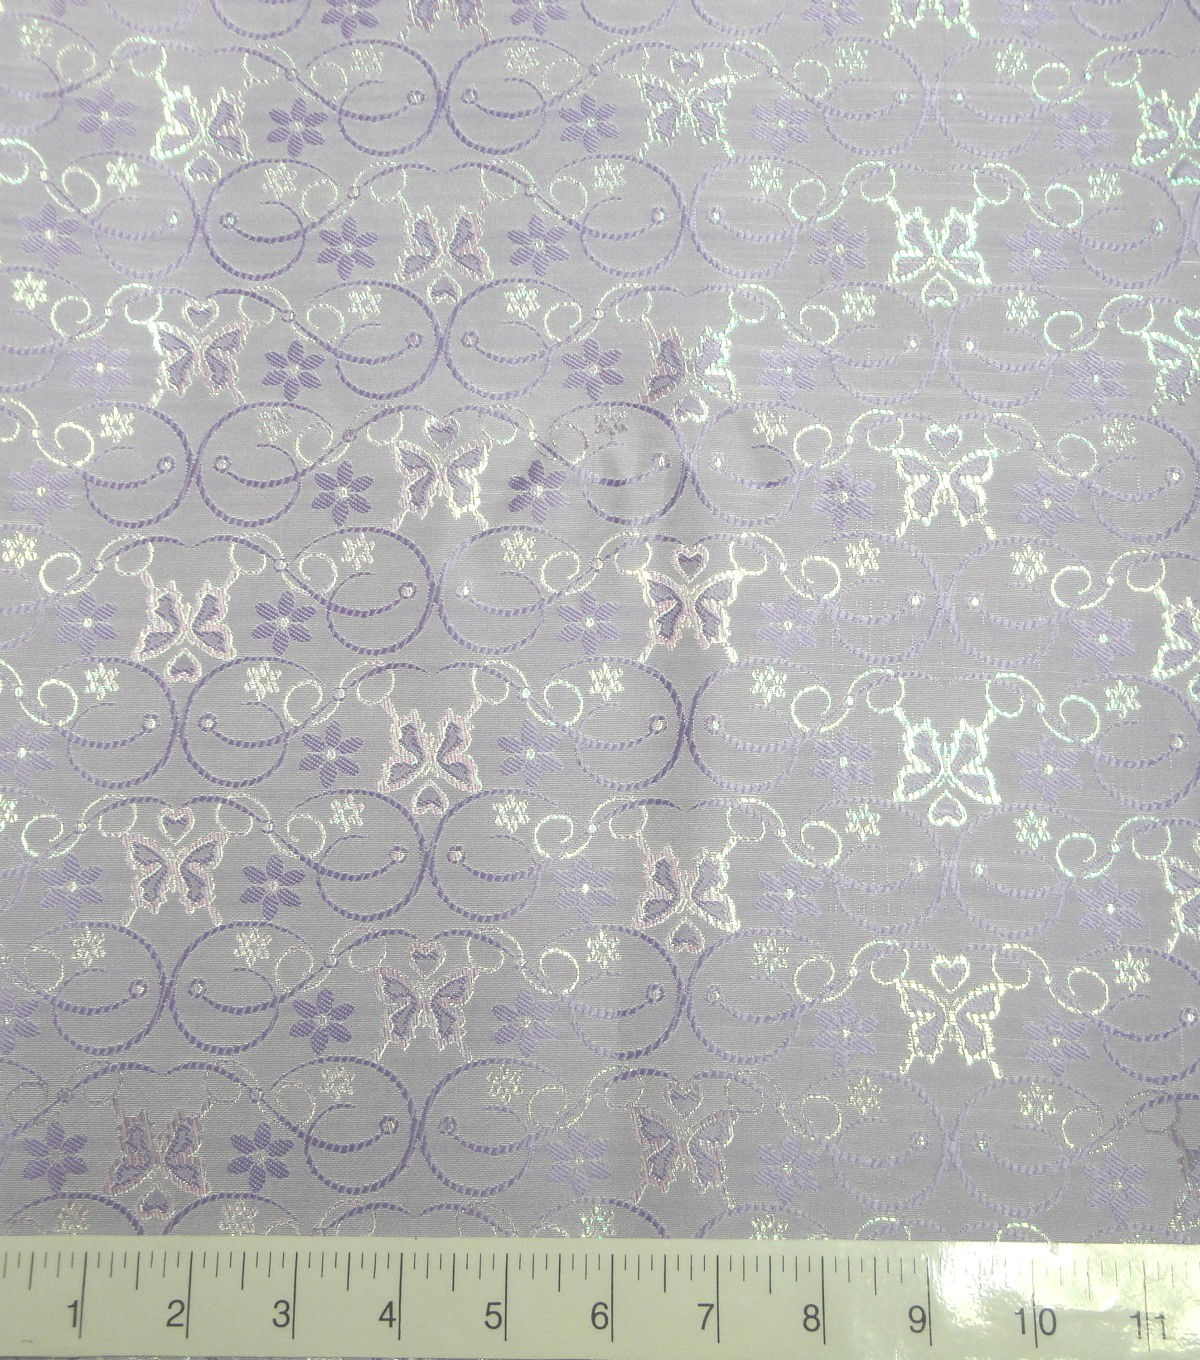 Glitterbug Brocade Fabric -Iridescent Lavender Butterfly